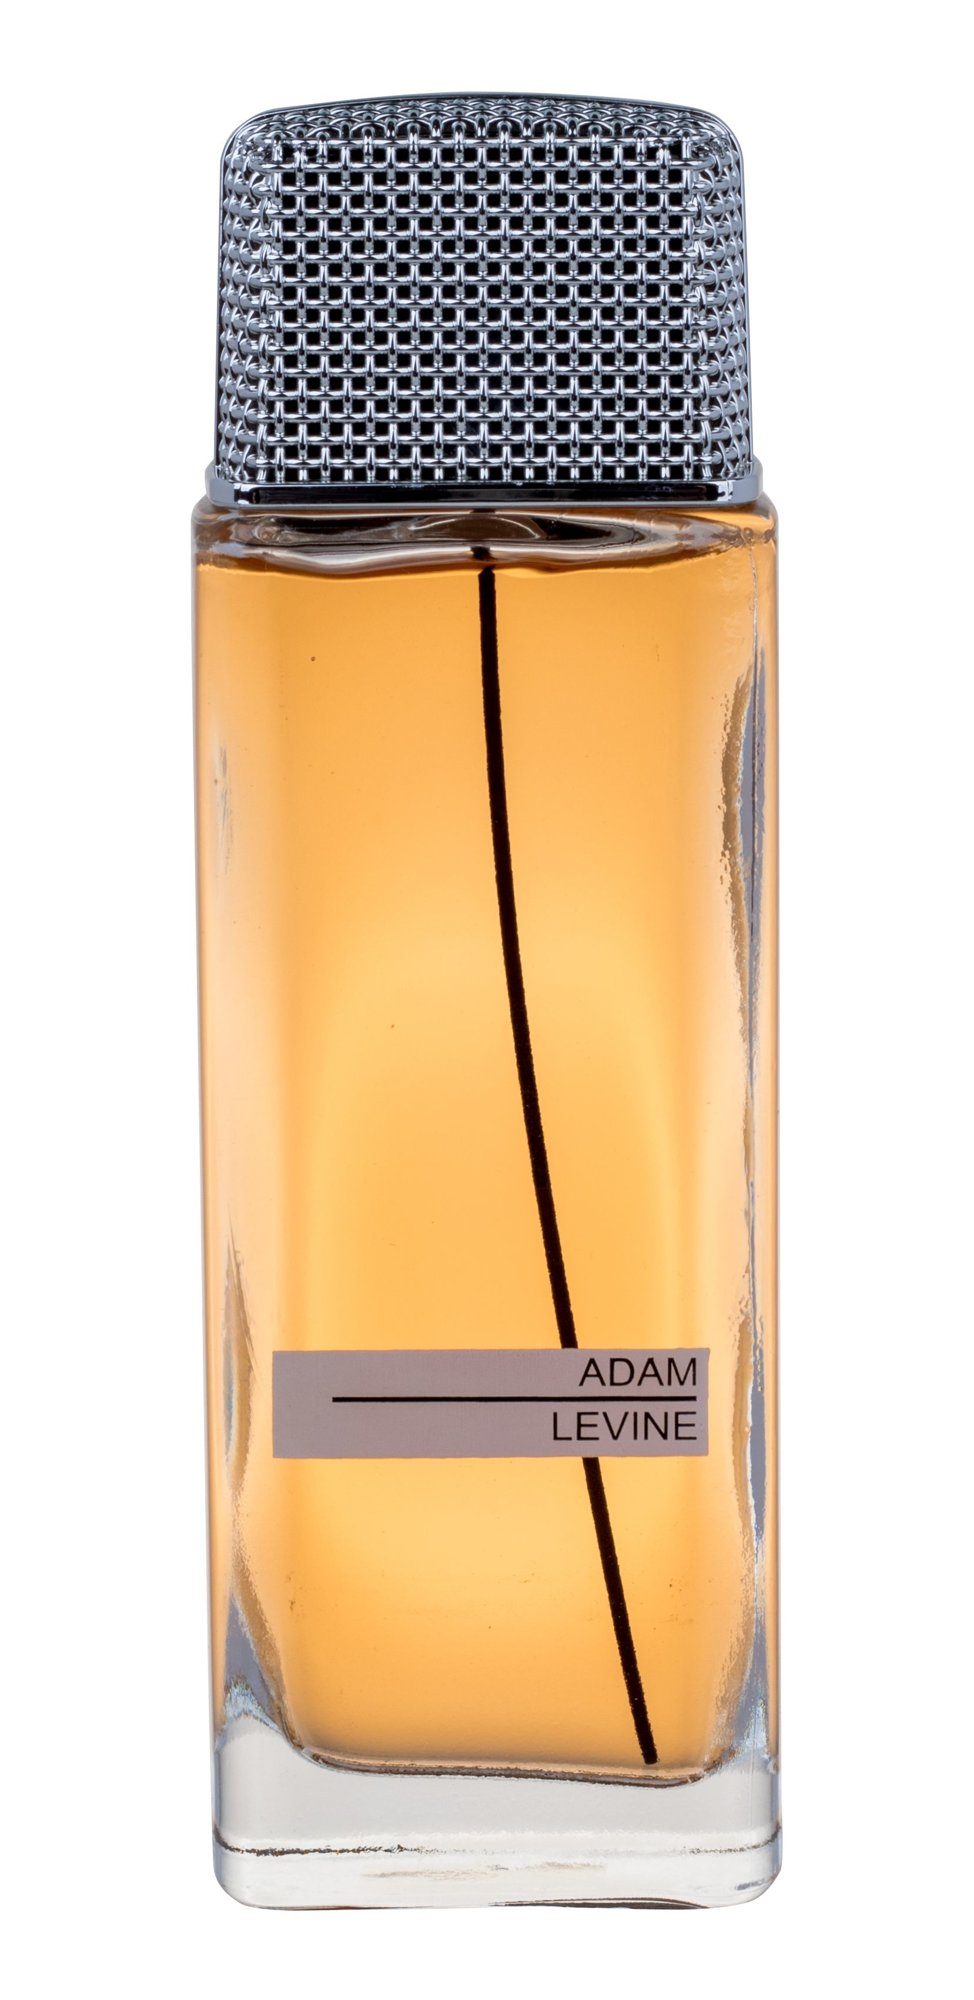 Adam Levine Adam Levine For Women EDP 100ml